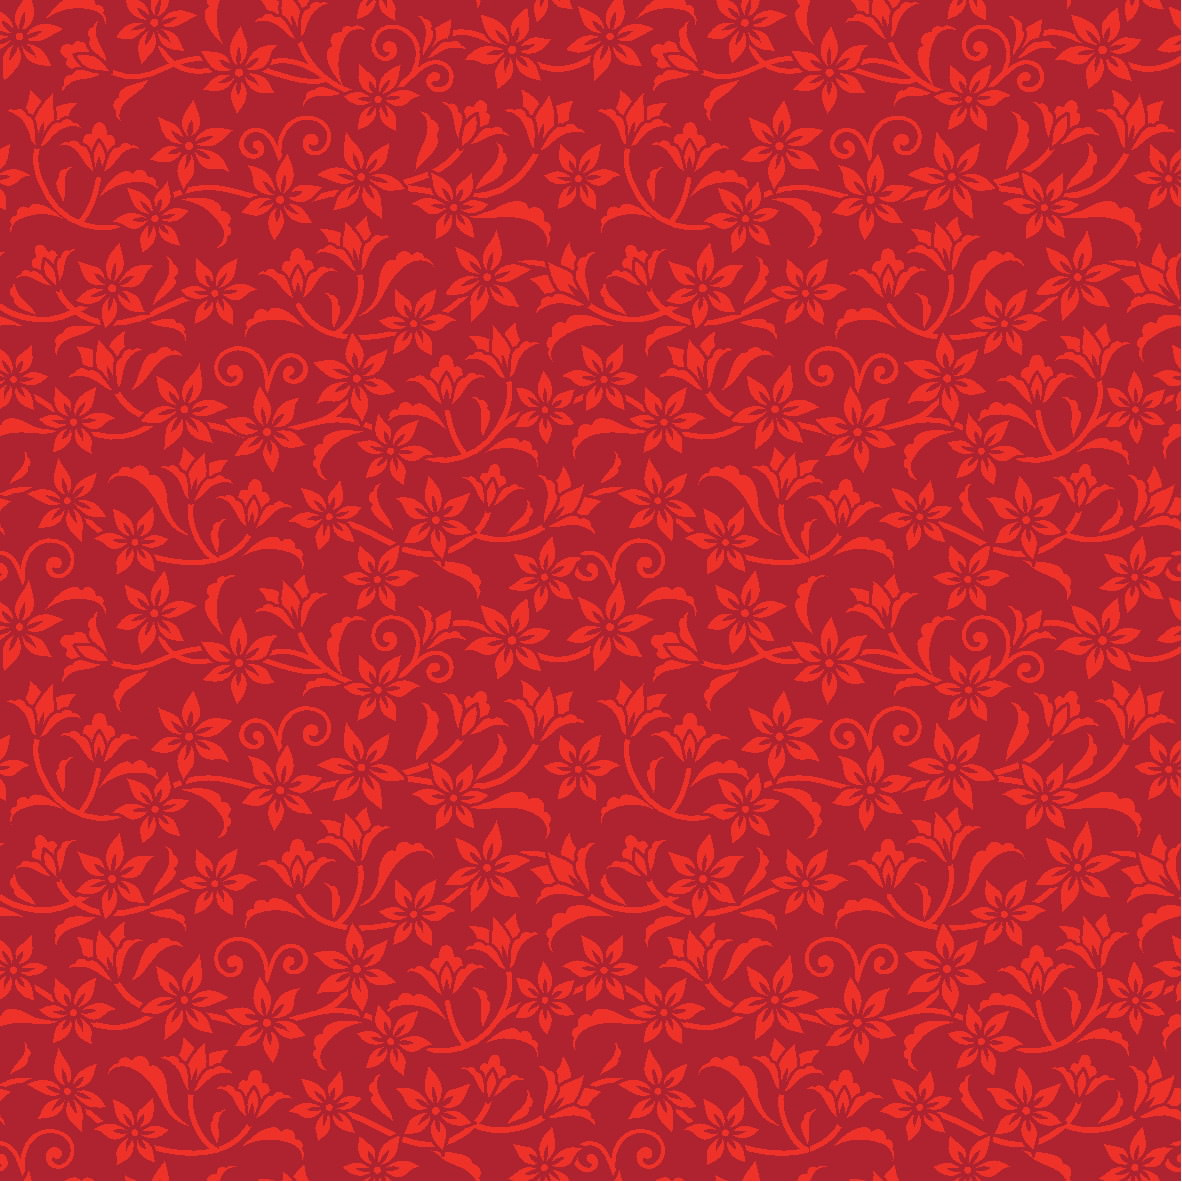 15 red floral patterns flowers patterns freecreatives